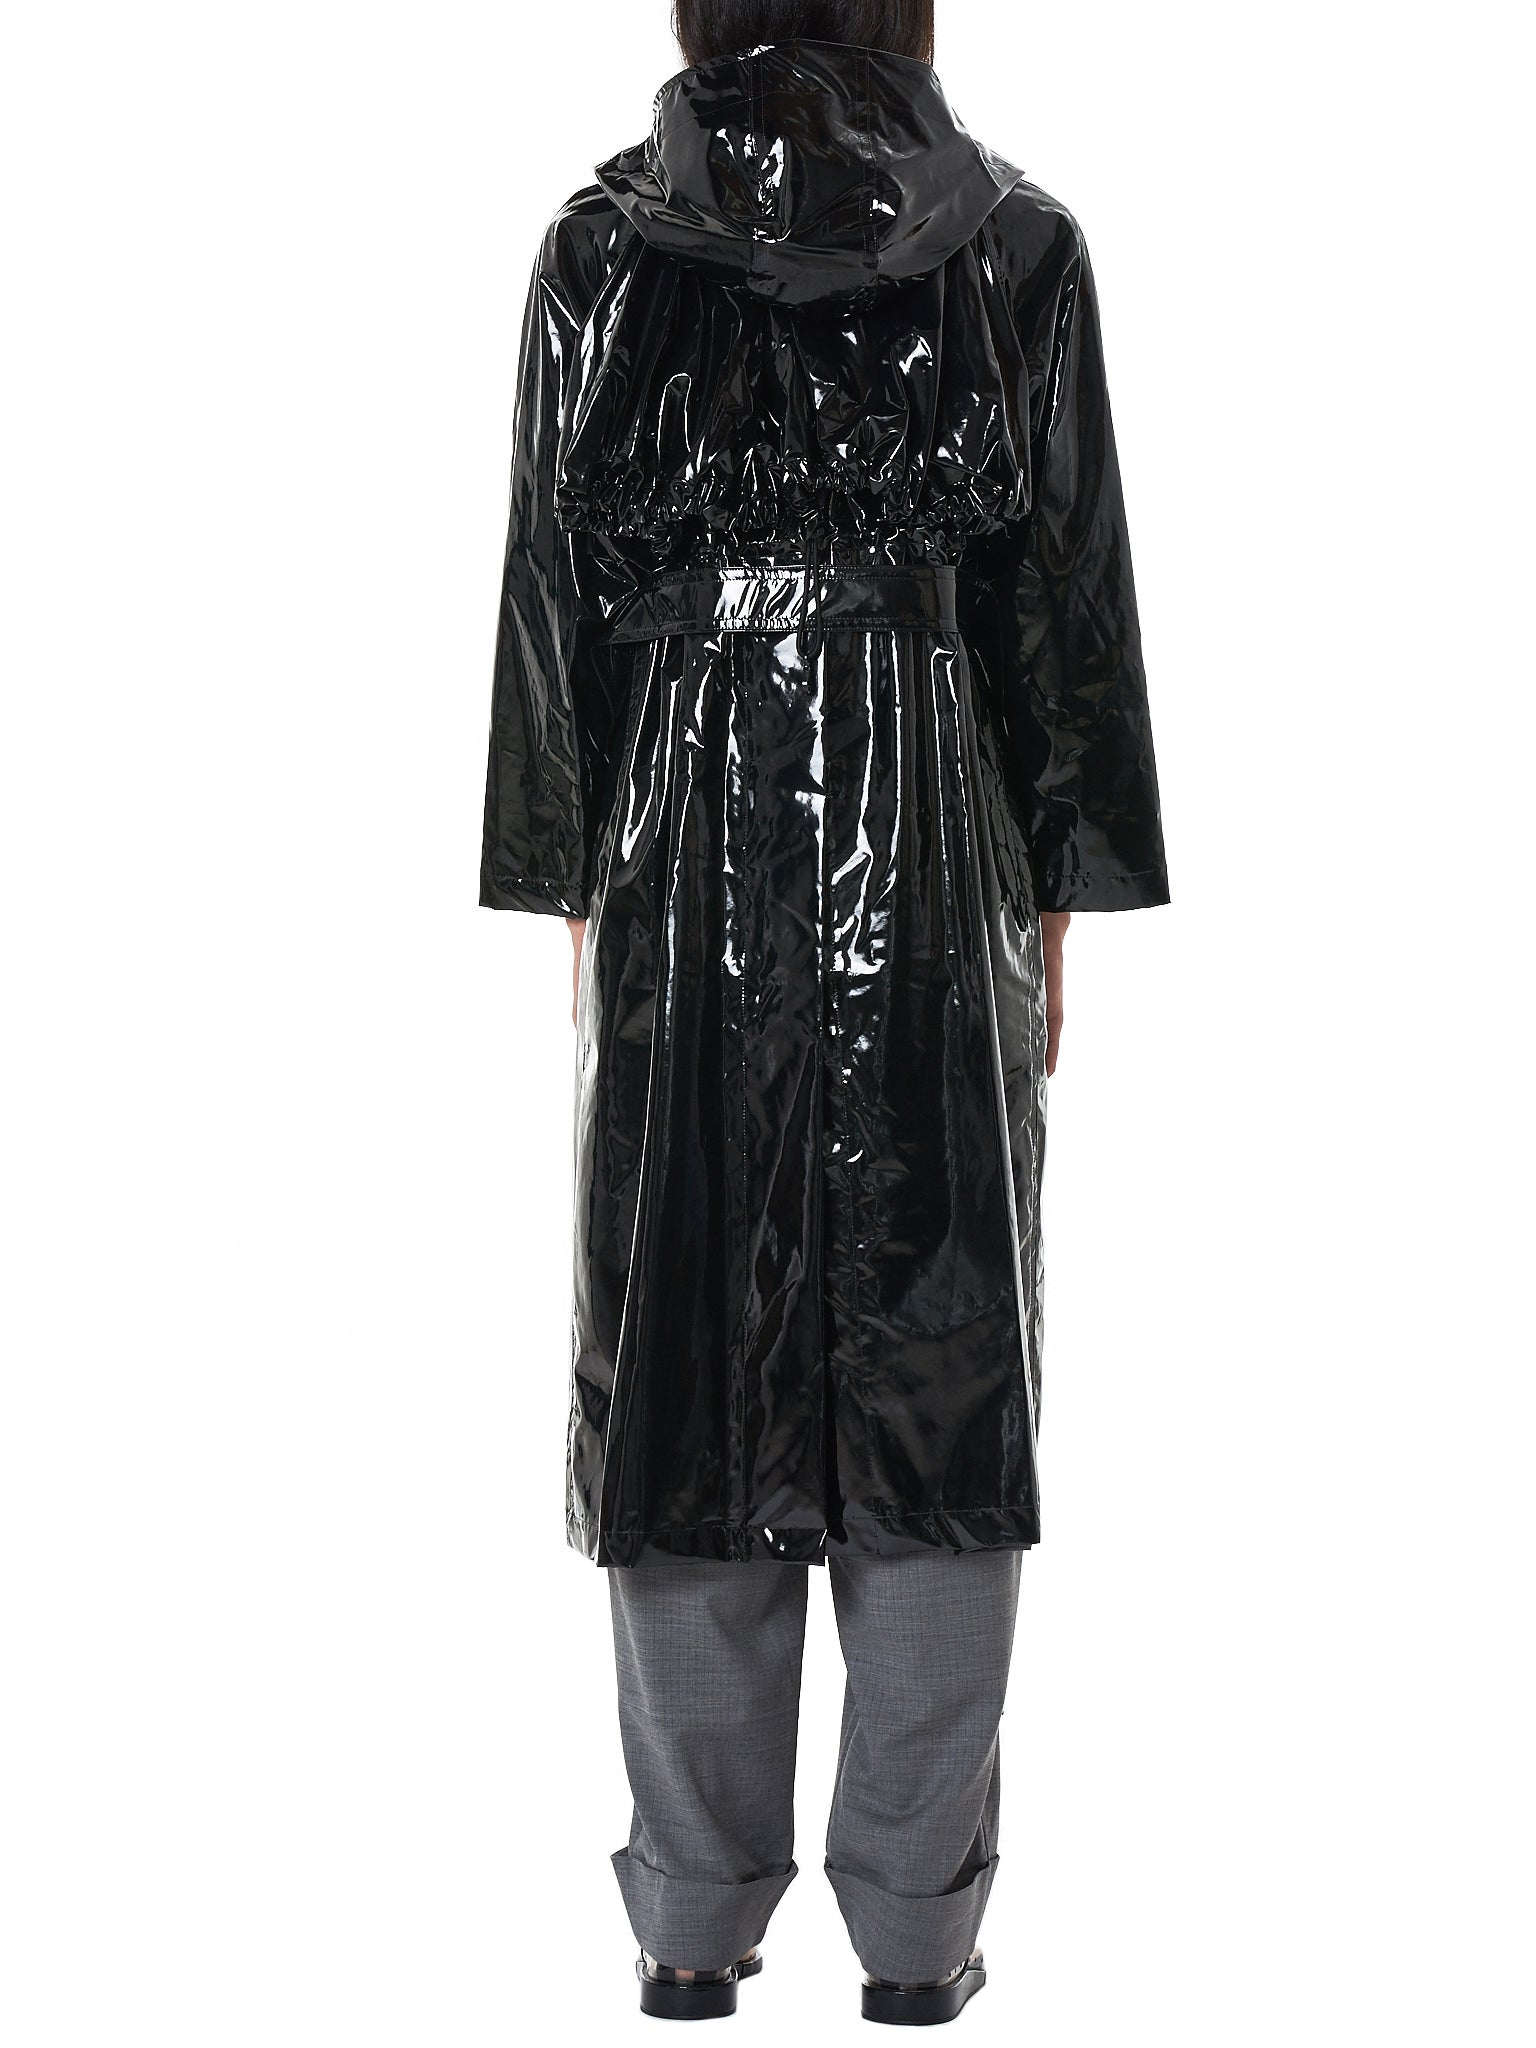 High-Shine Packable Raincoat (TA82-FA108-E-BLACK)